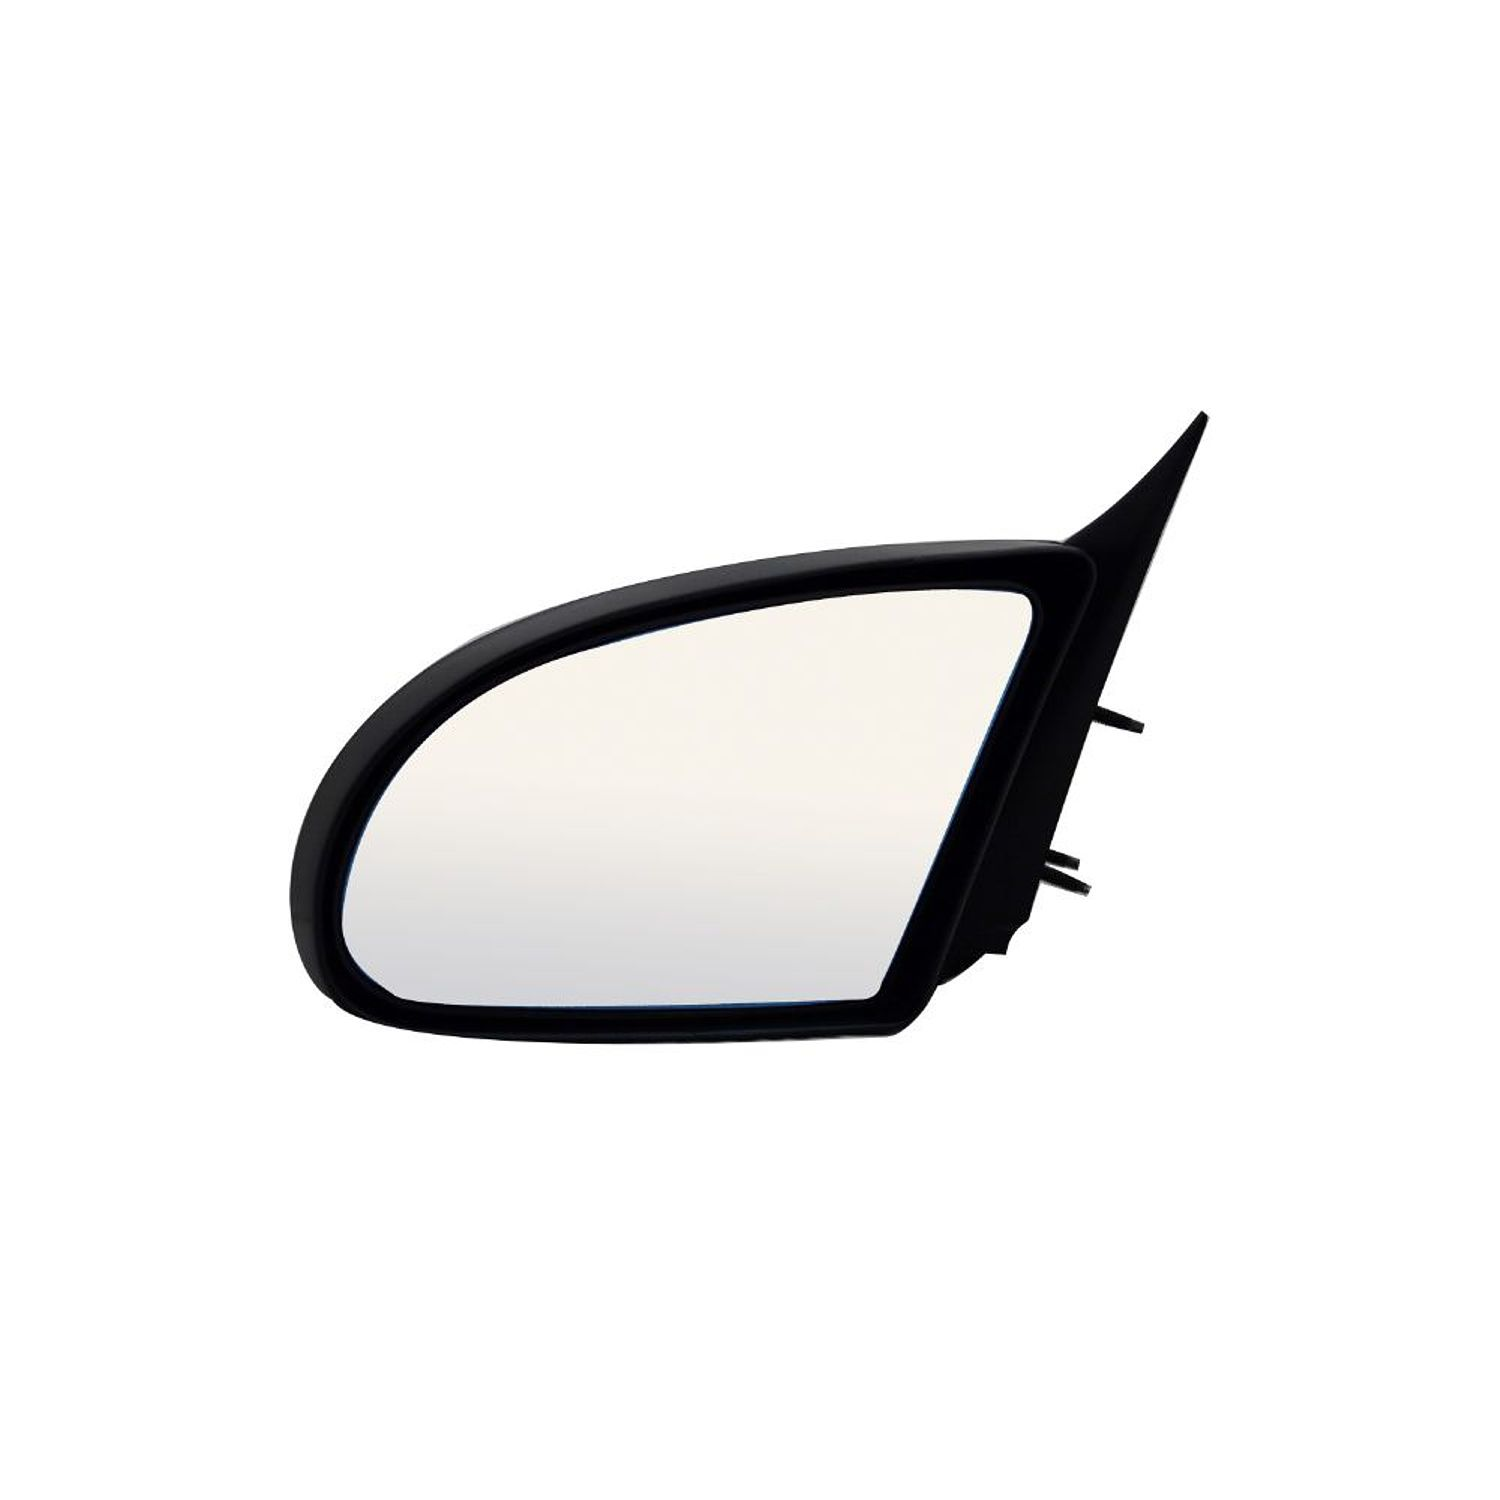 For Ford Taurus Black Power Non Heated Replacement Driver Side Mirror (2560232)